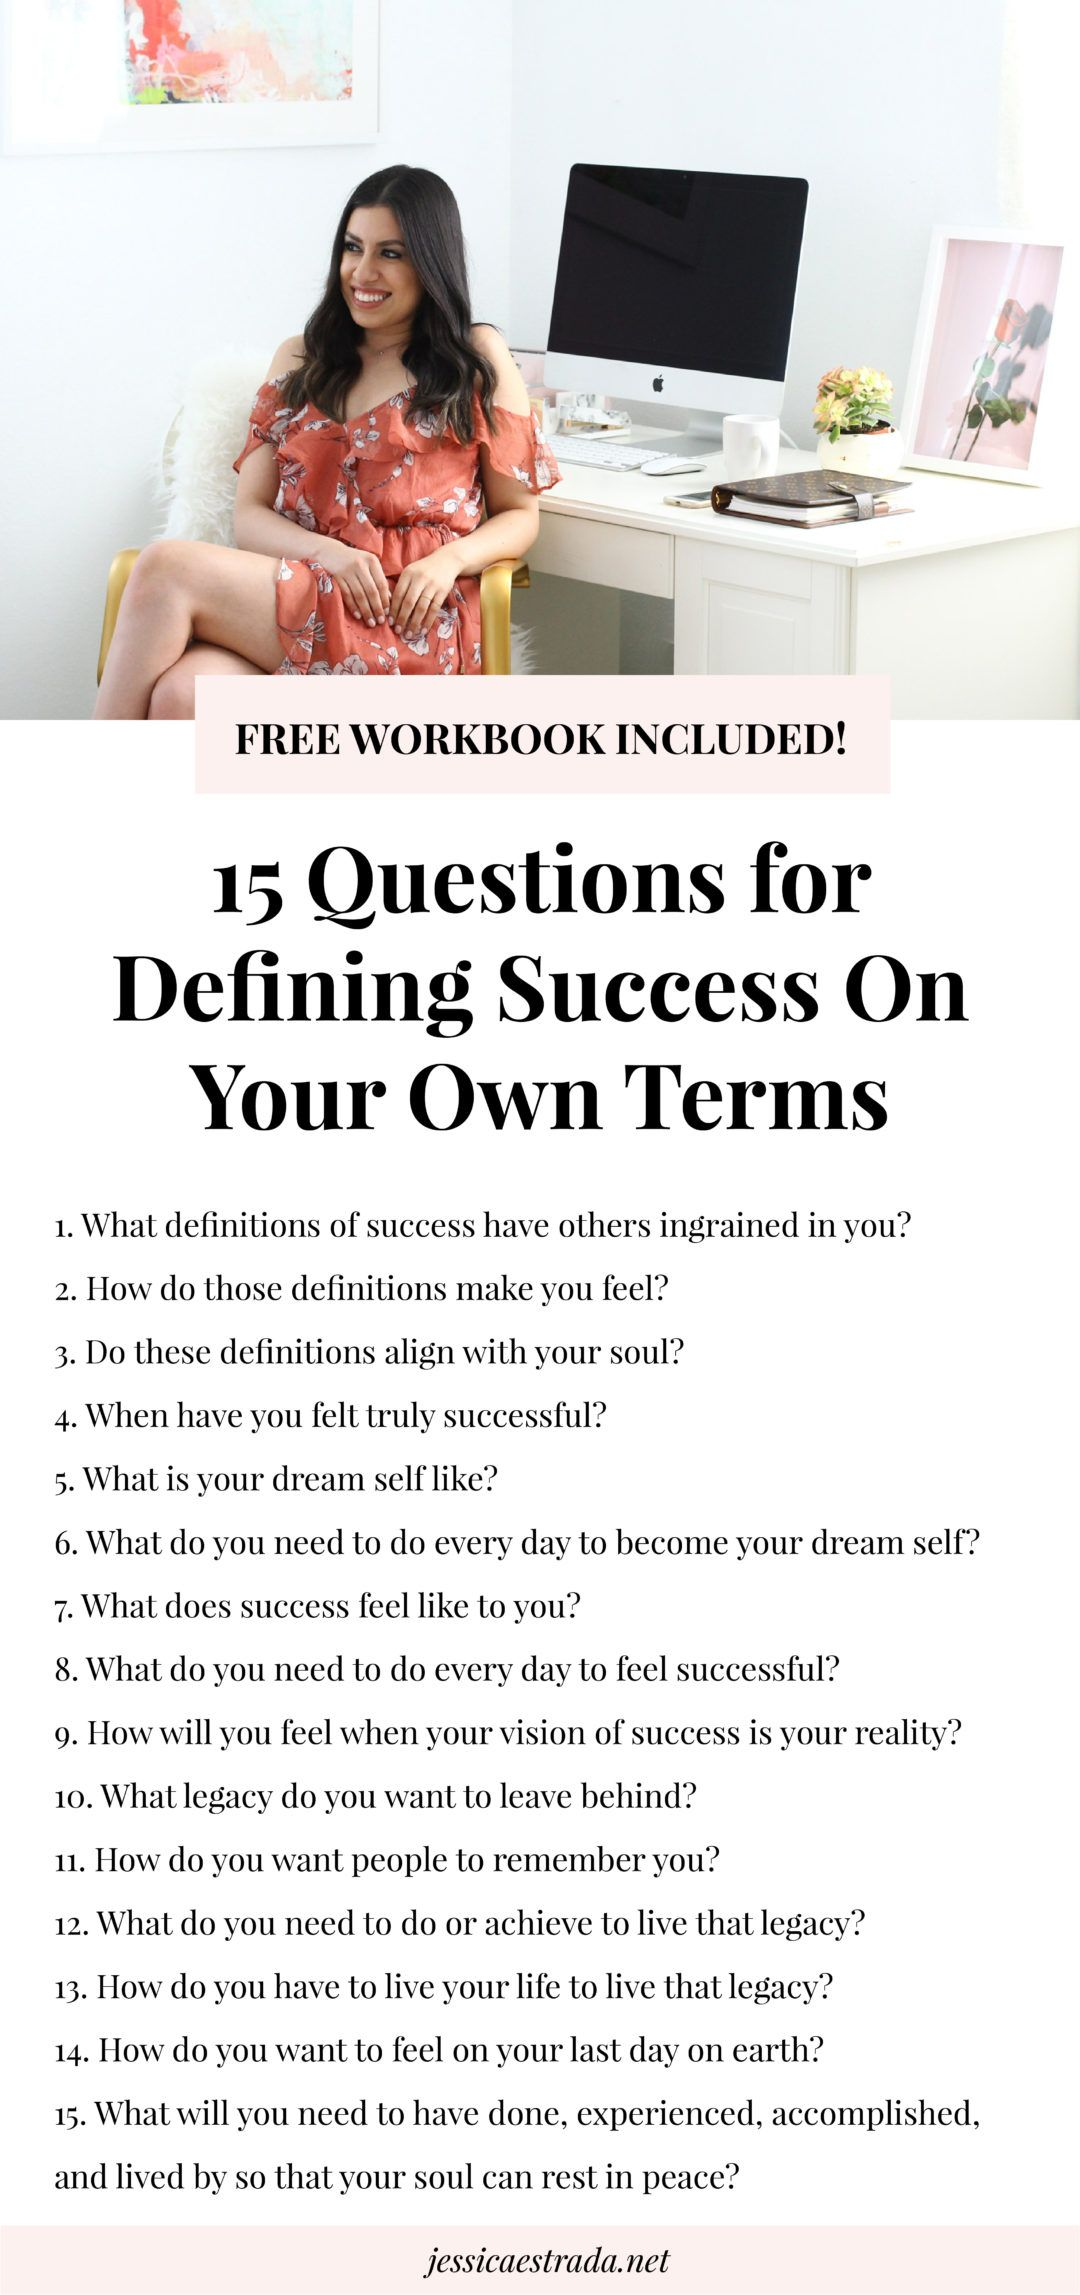 Forum on this topic: How to Be Your Own Boss Successfully, how-to-be-your-own-boss-successfully/